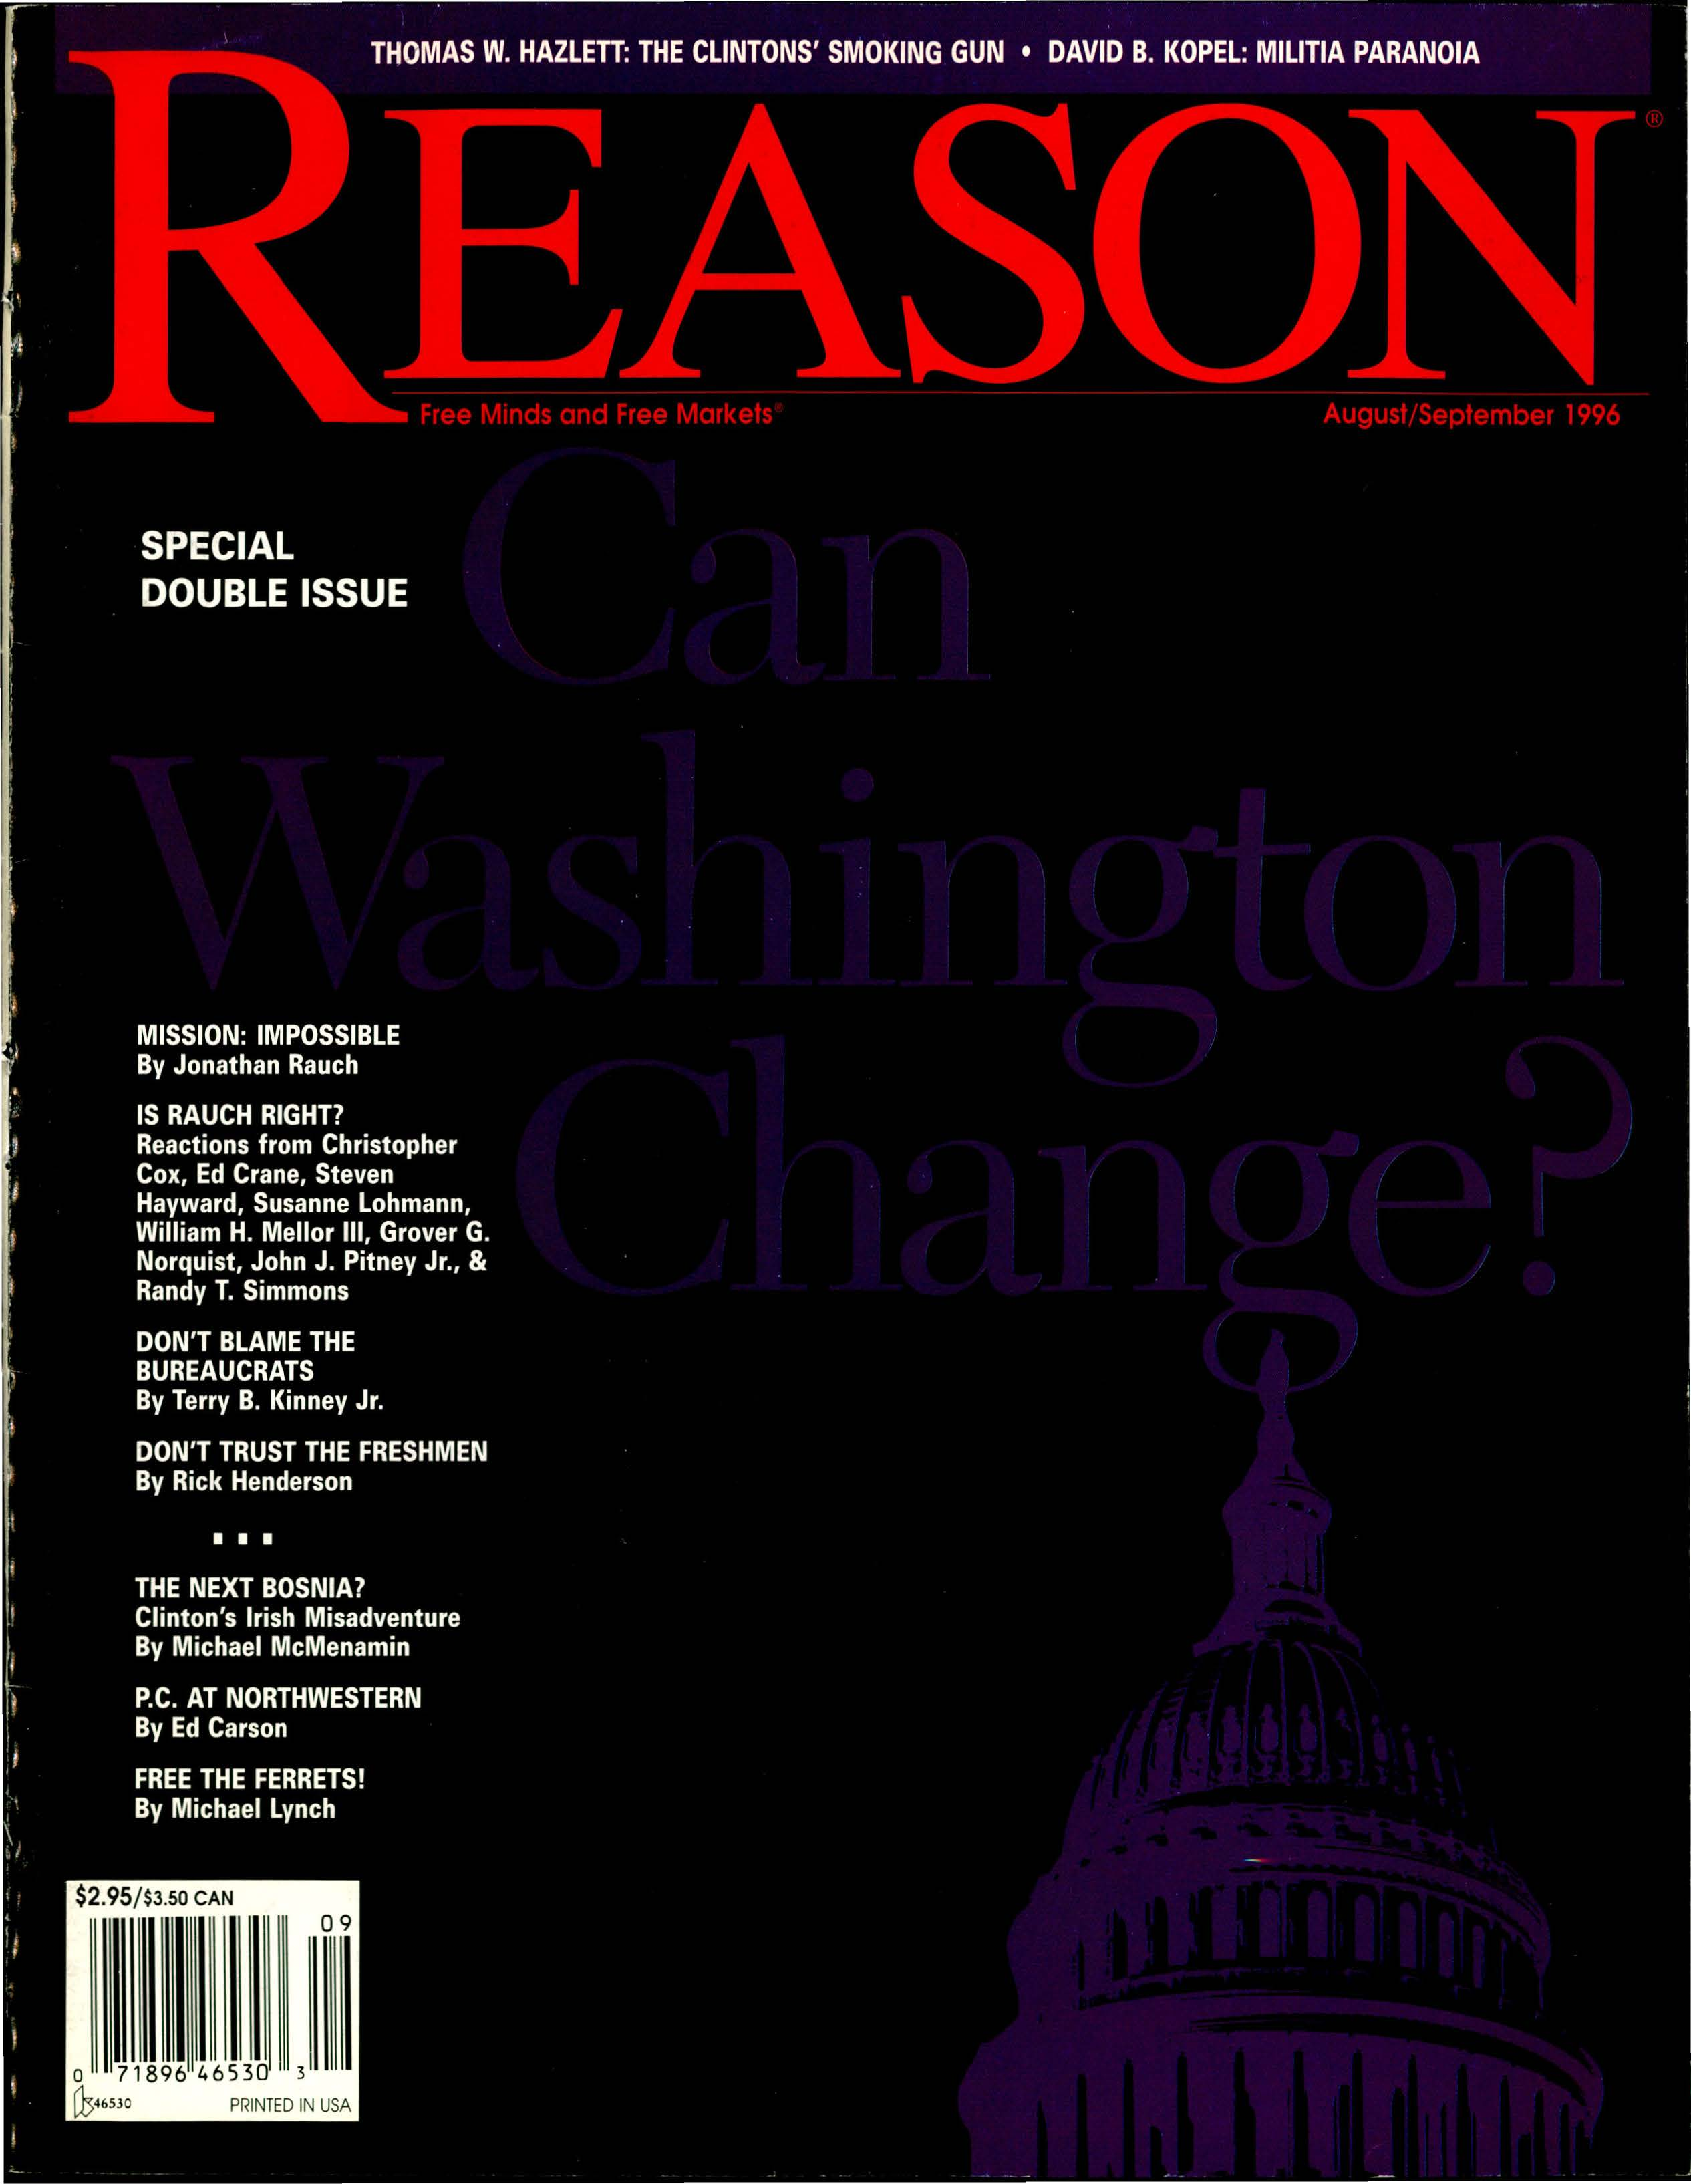 Reason Magazine, August/September 1996 cover image